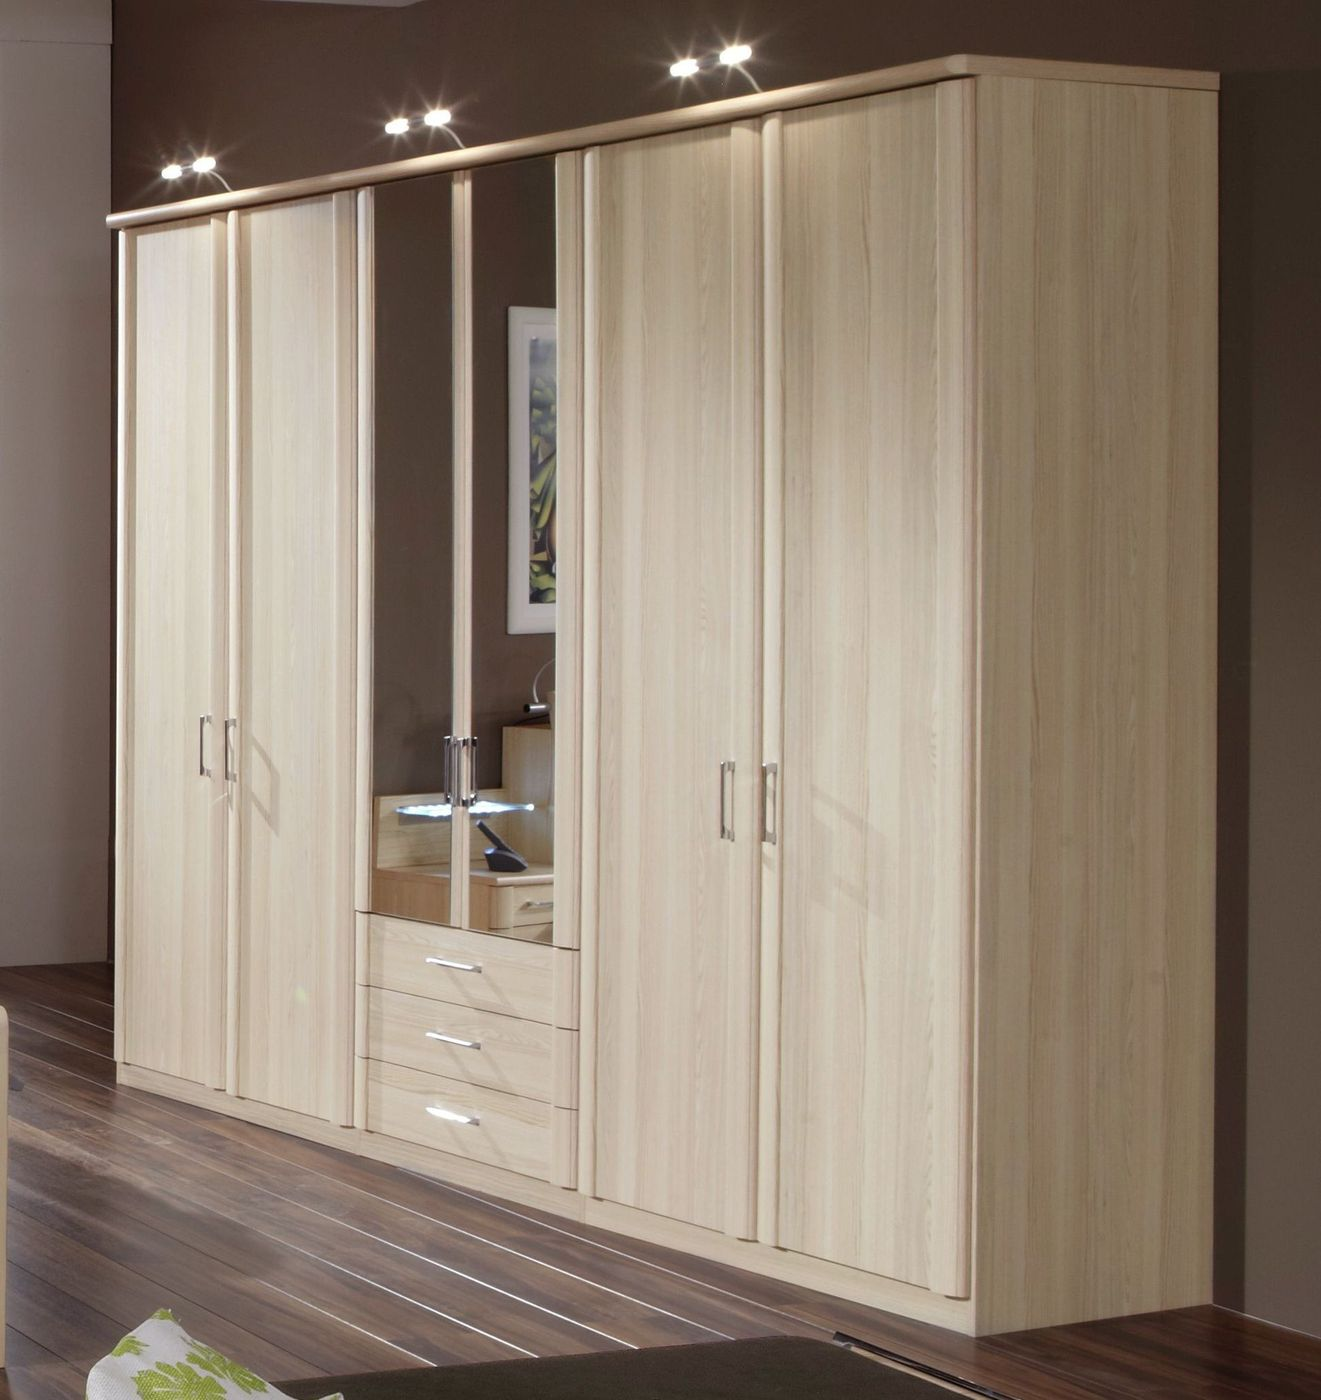 kleiderschrank mit spiegel und schubladen in esche dekor rapino. Black Bedroom Furniture Sets. Home Design Ideas